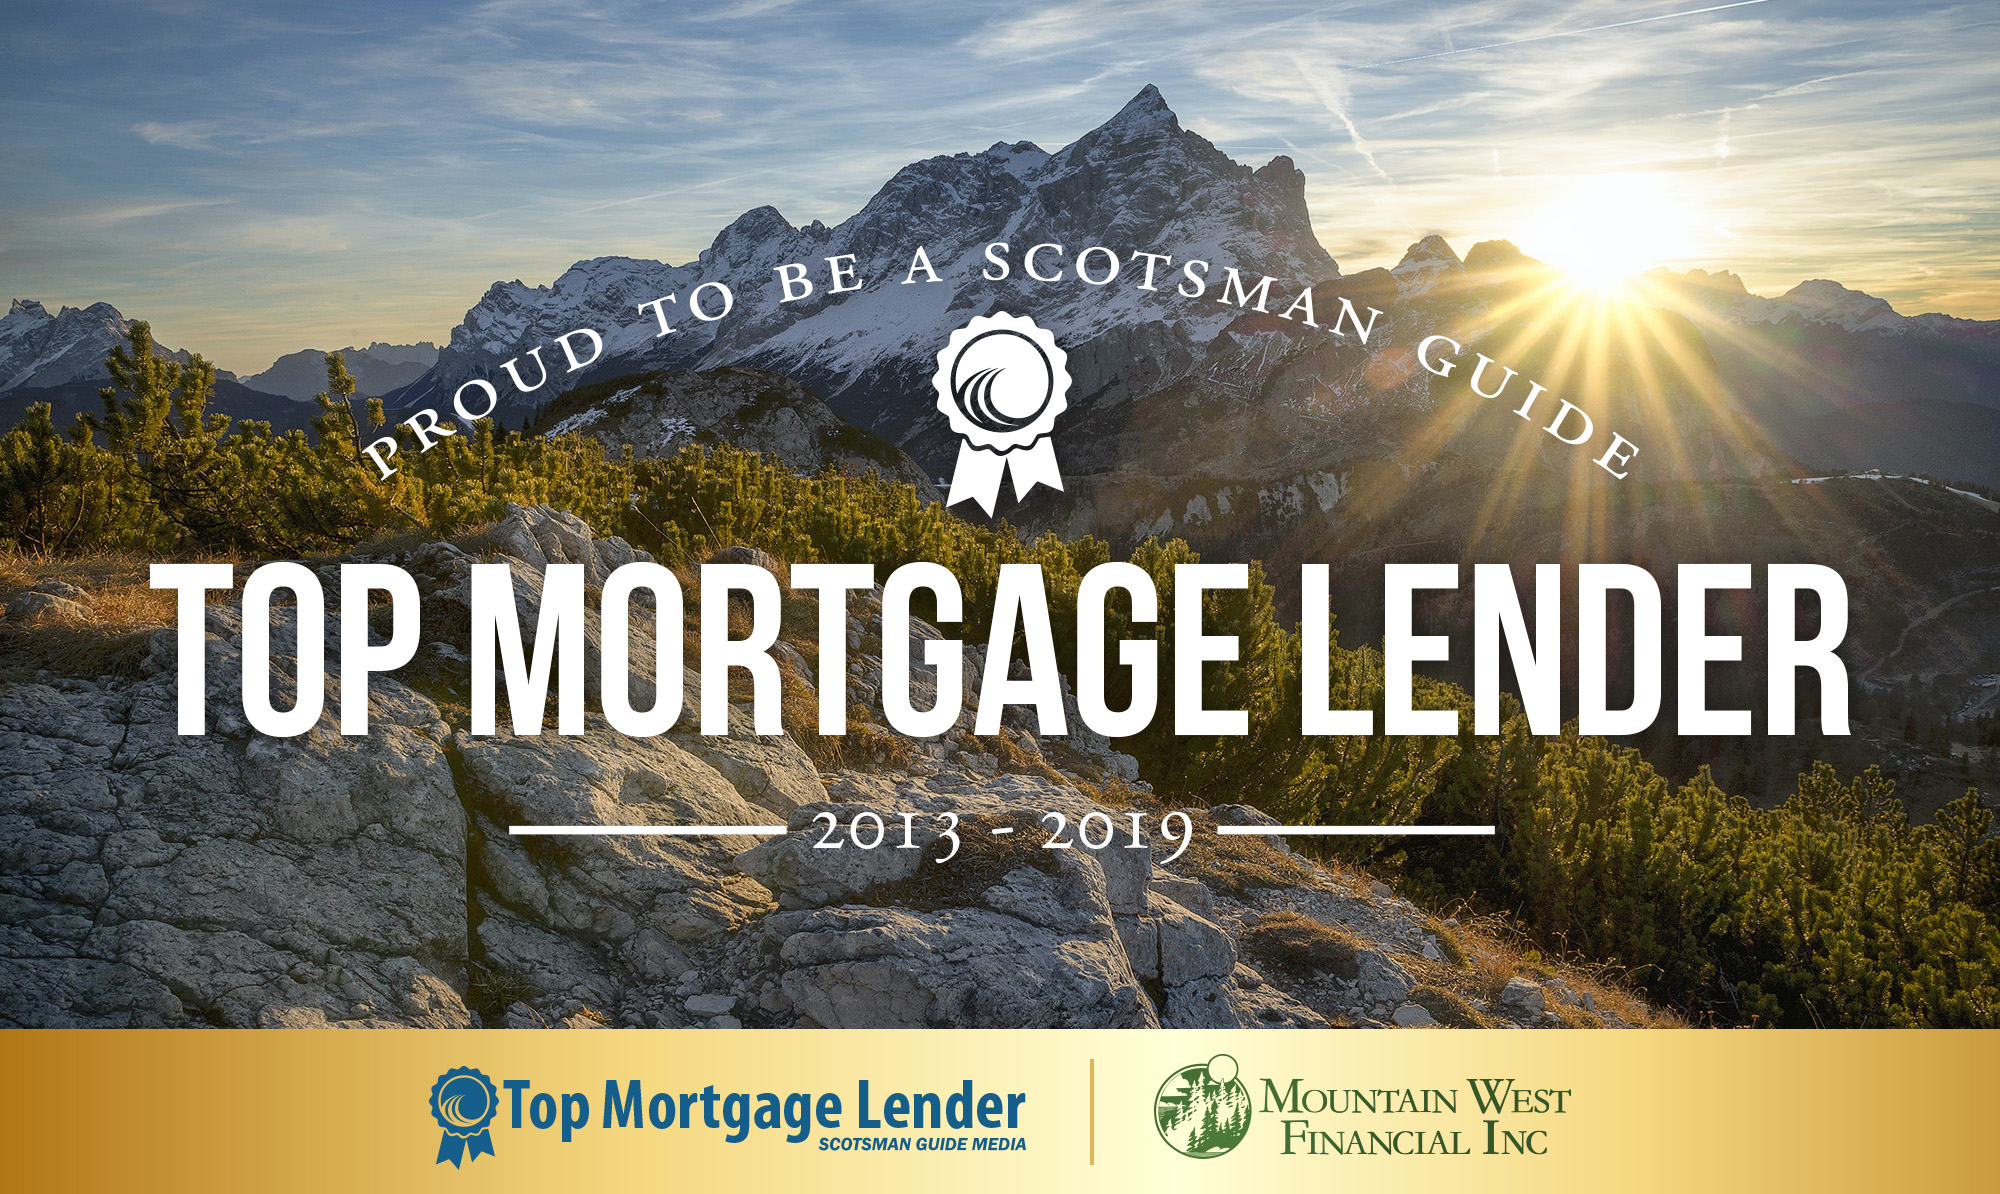 MWF Named Top Mortgage Lender